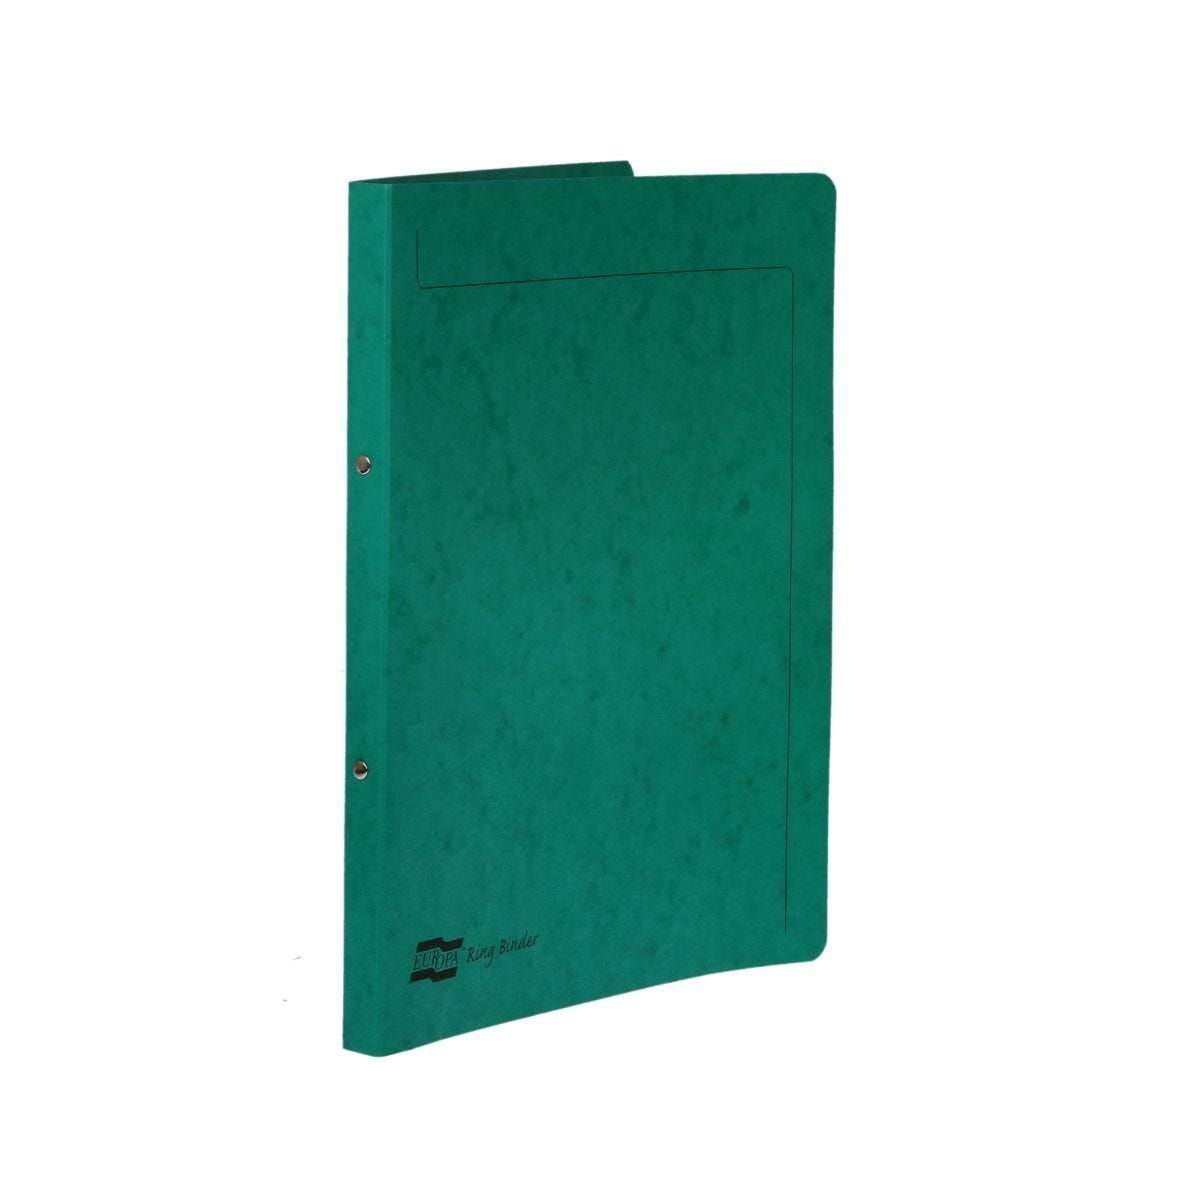 Europa Ring Binder A4 16mm Capacity Green